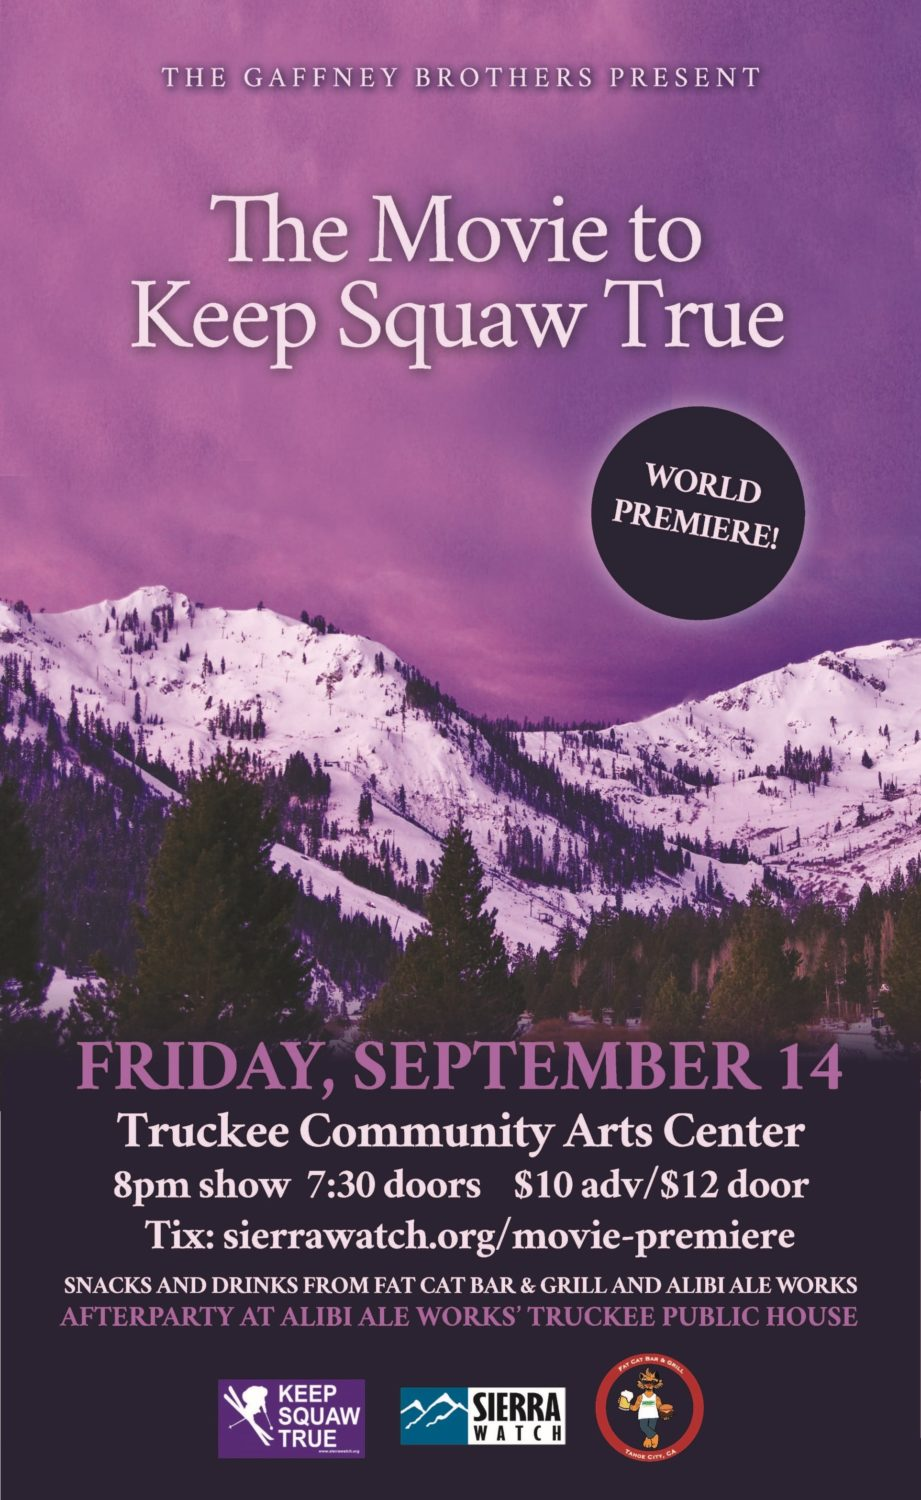 squaw valley, squaw, keep squaw true